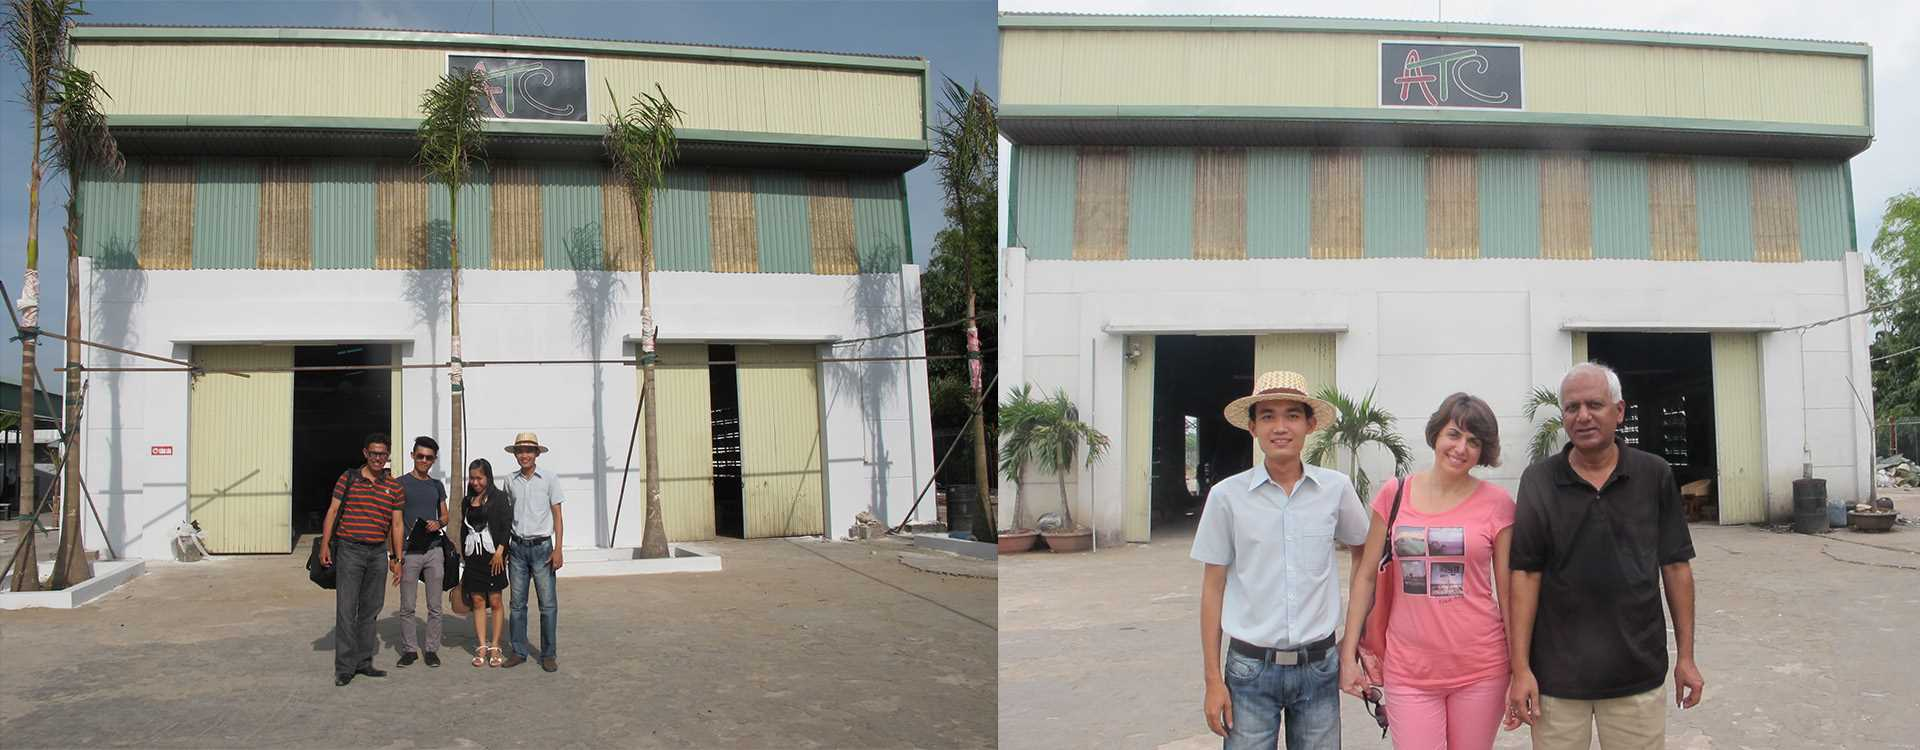 Vietnam Furniture Manufacturer Factory Visiting